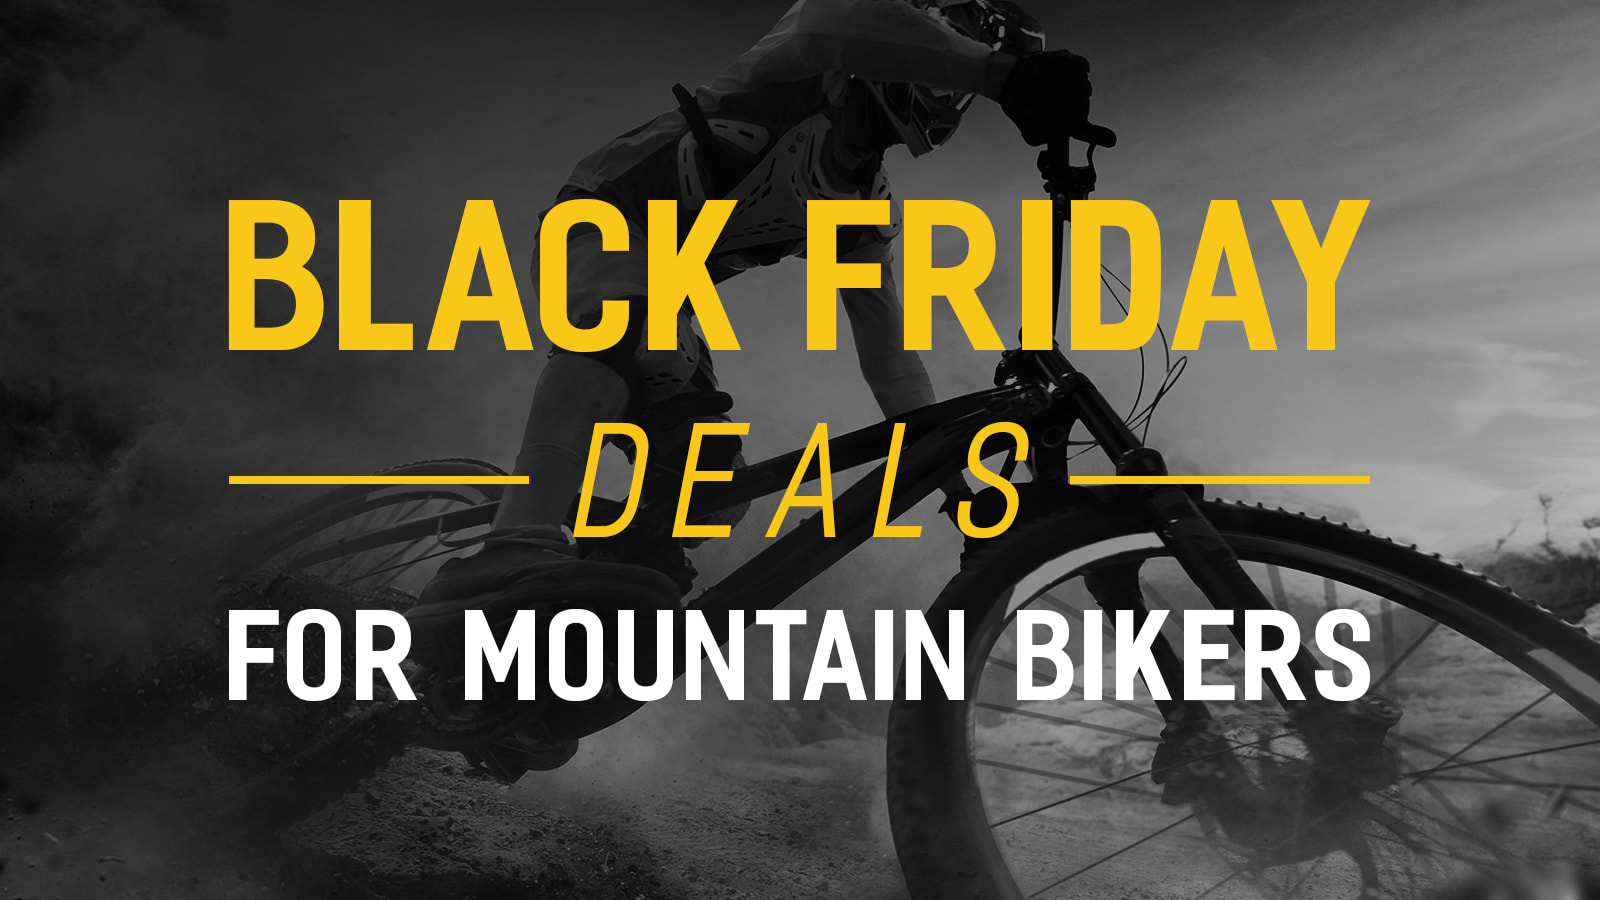 Black Friday is a great time to cash in on discounted cycling gear.